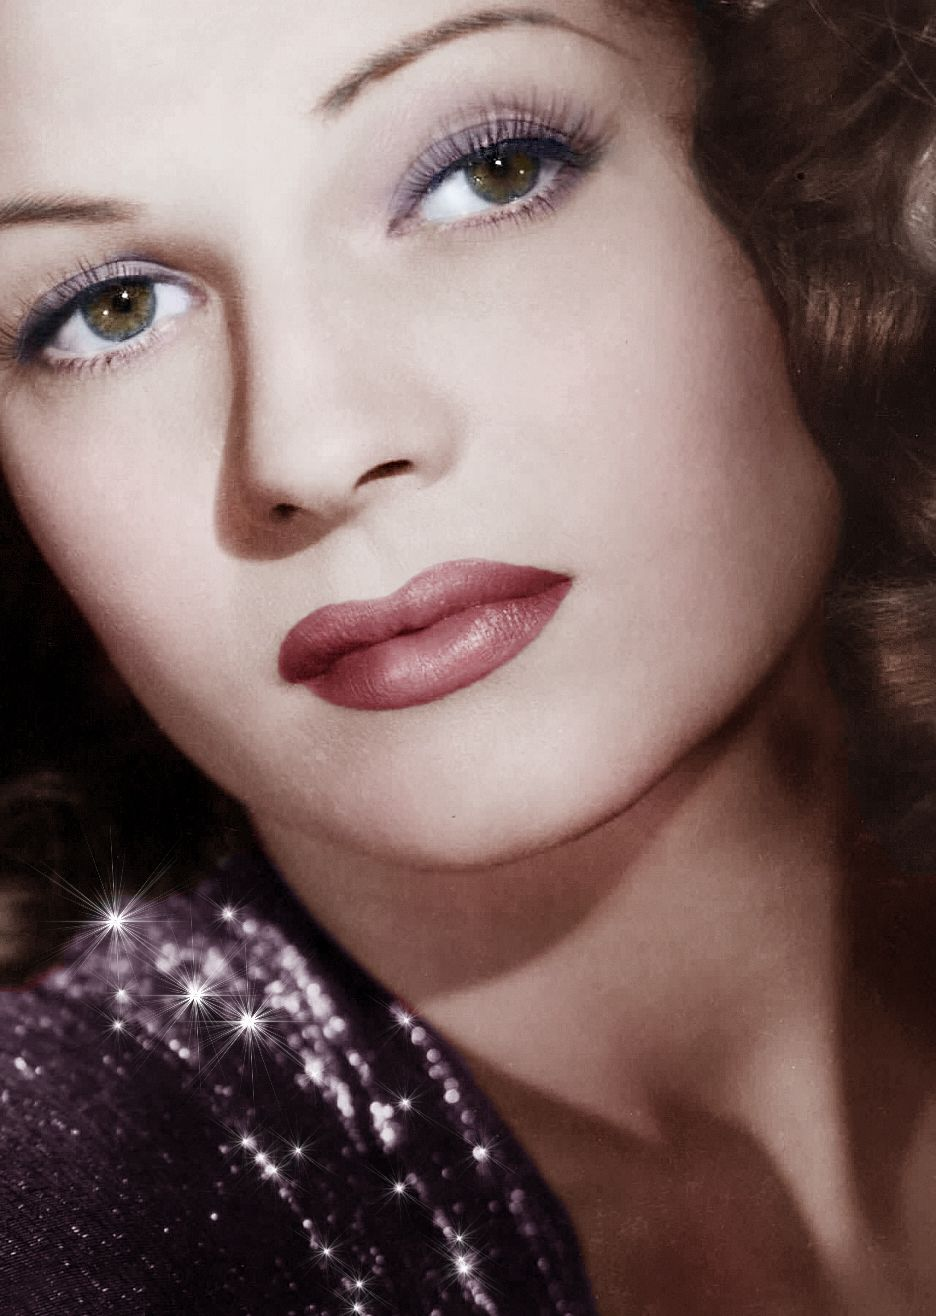 #RitaHayworth